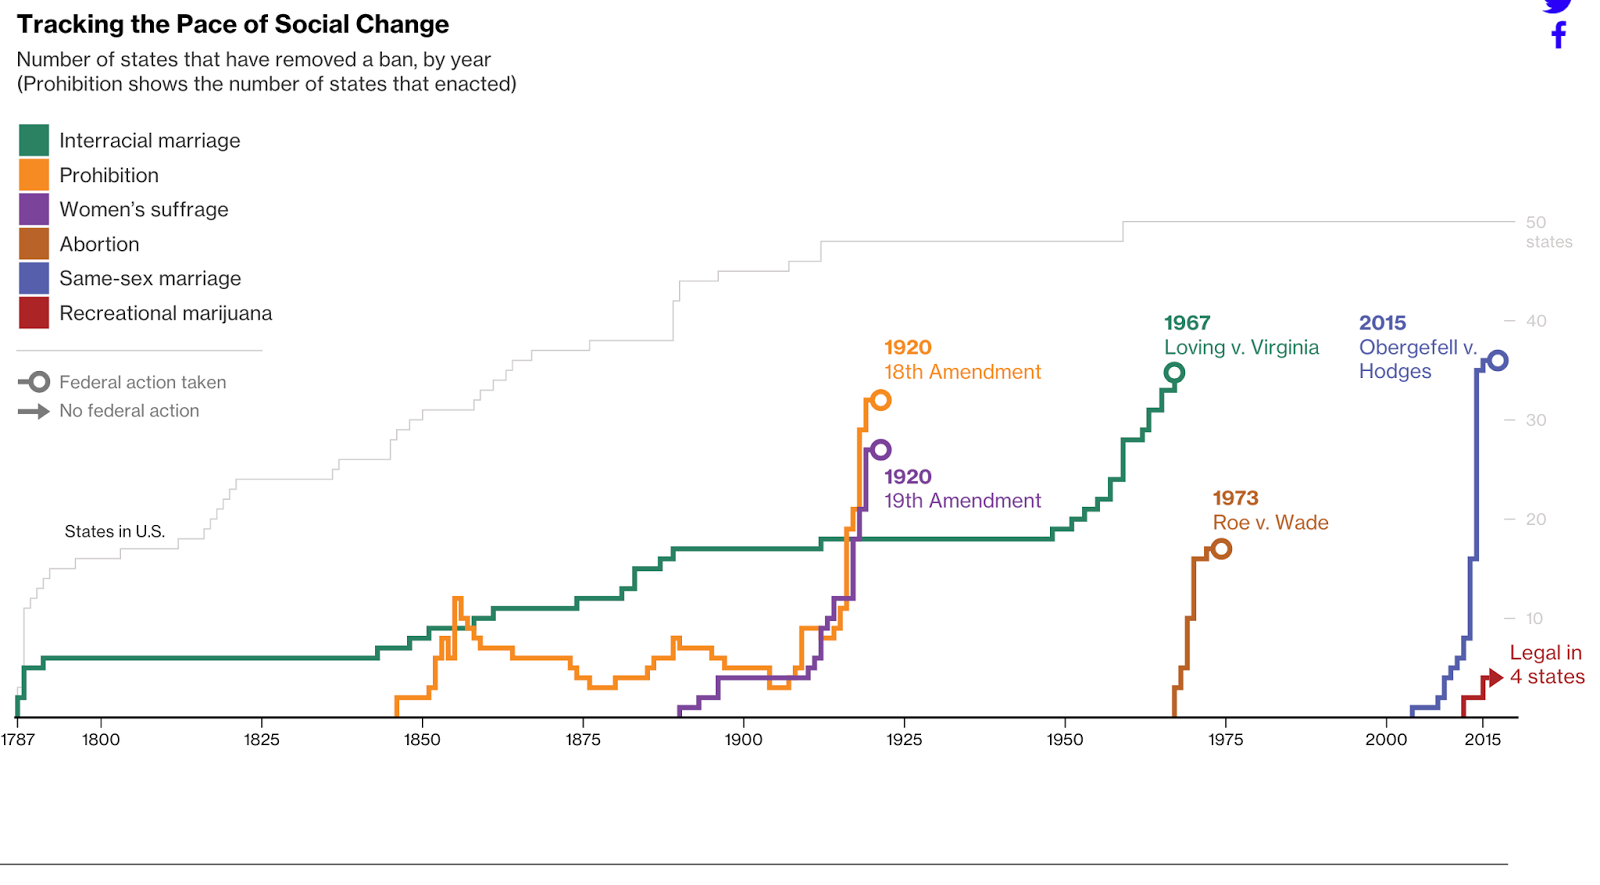 Super insightful cool graph about social change in US Darian